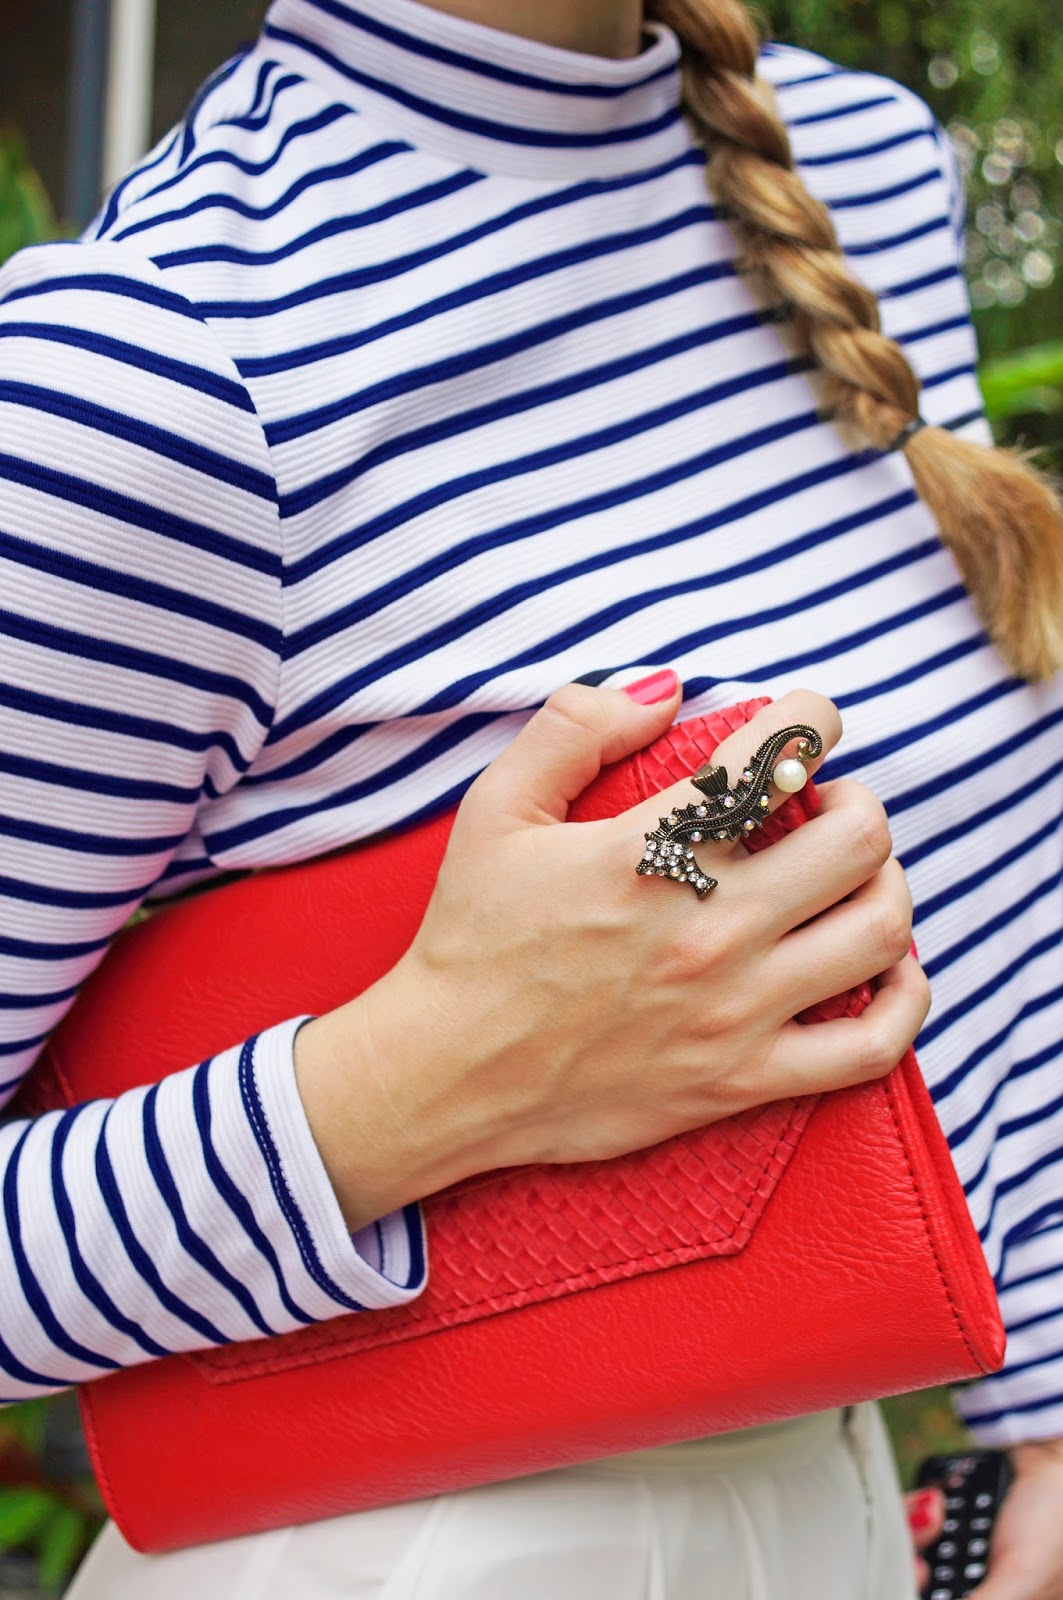 Loving these cute nautical accessories!